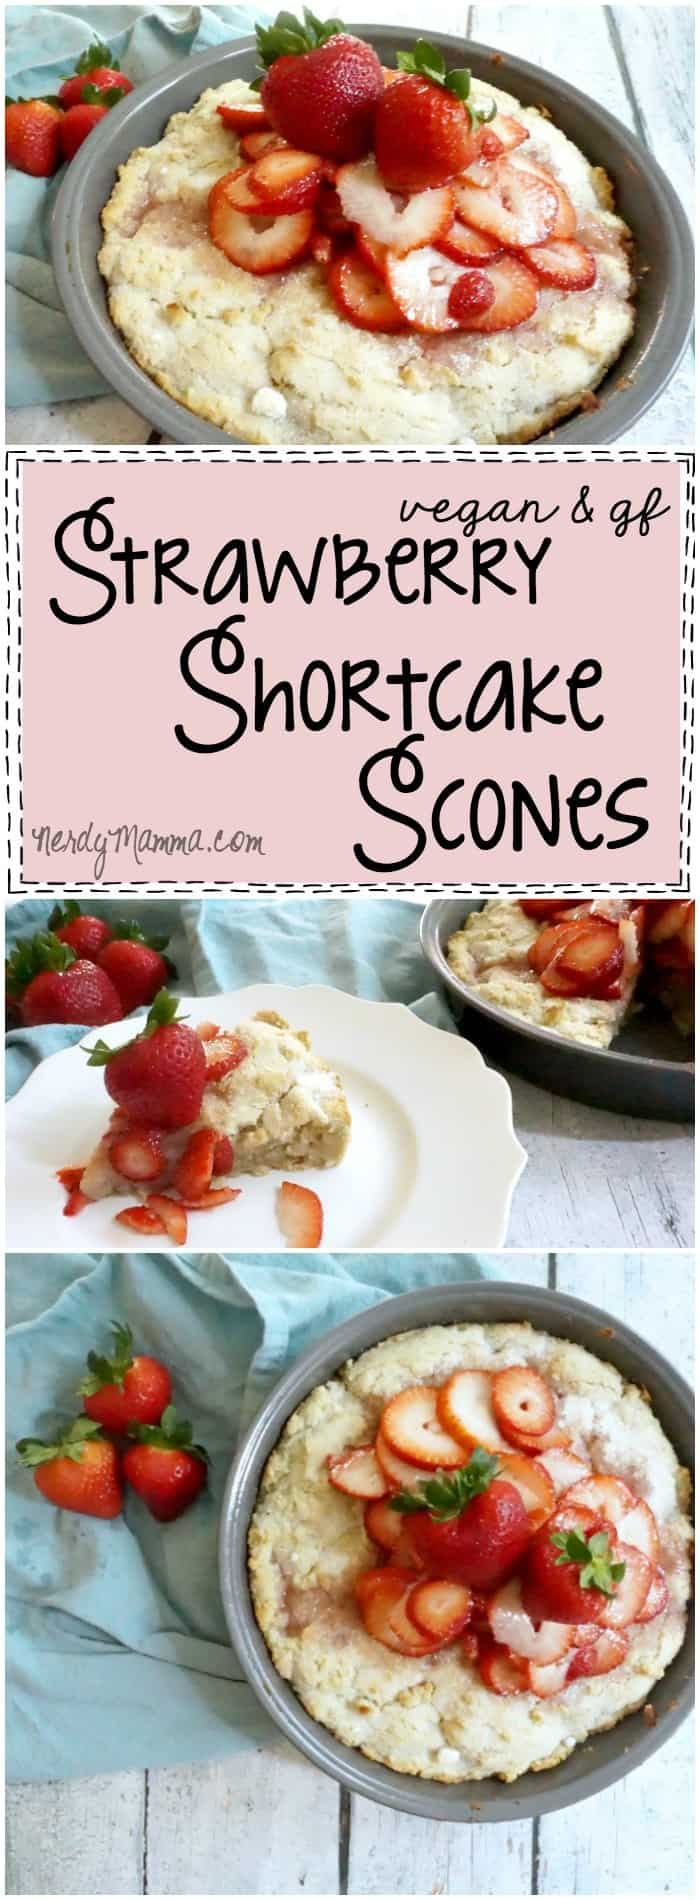 This recipe for vegan and gluten-free strawberry shortcake scones! OMG--Looks so awesome...and fluffy. I love it!